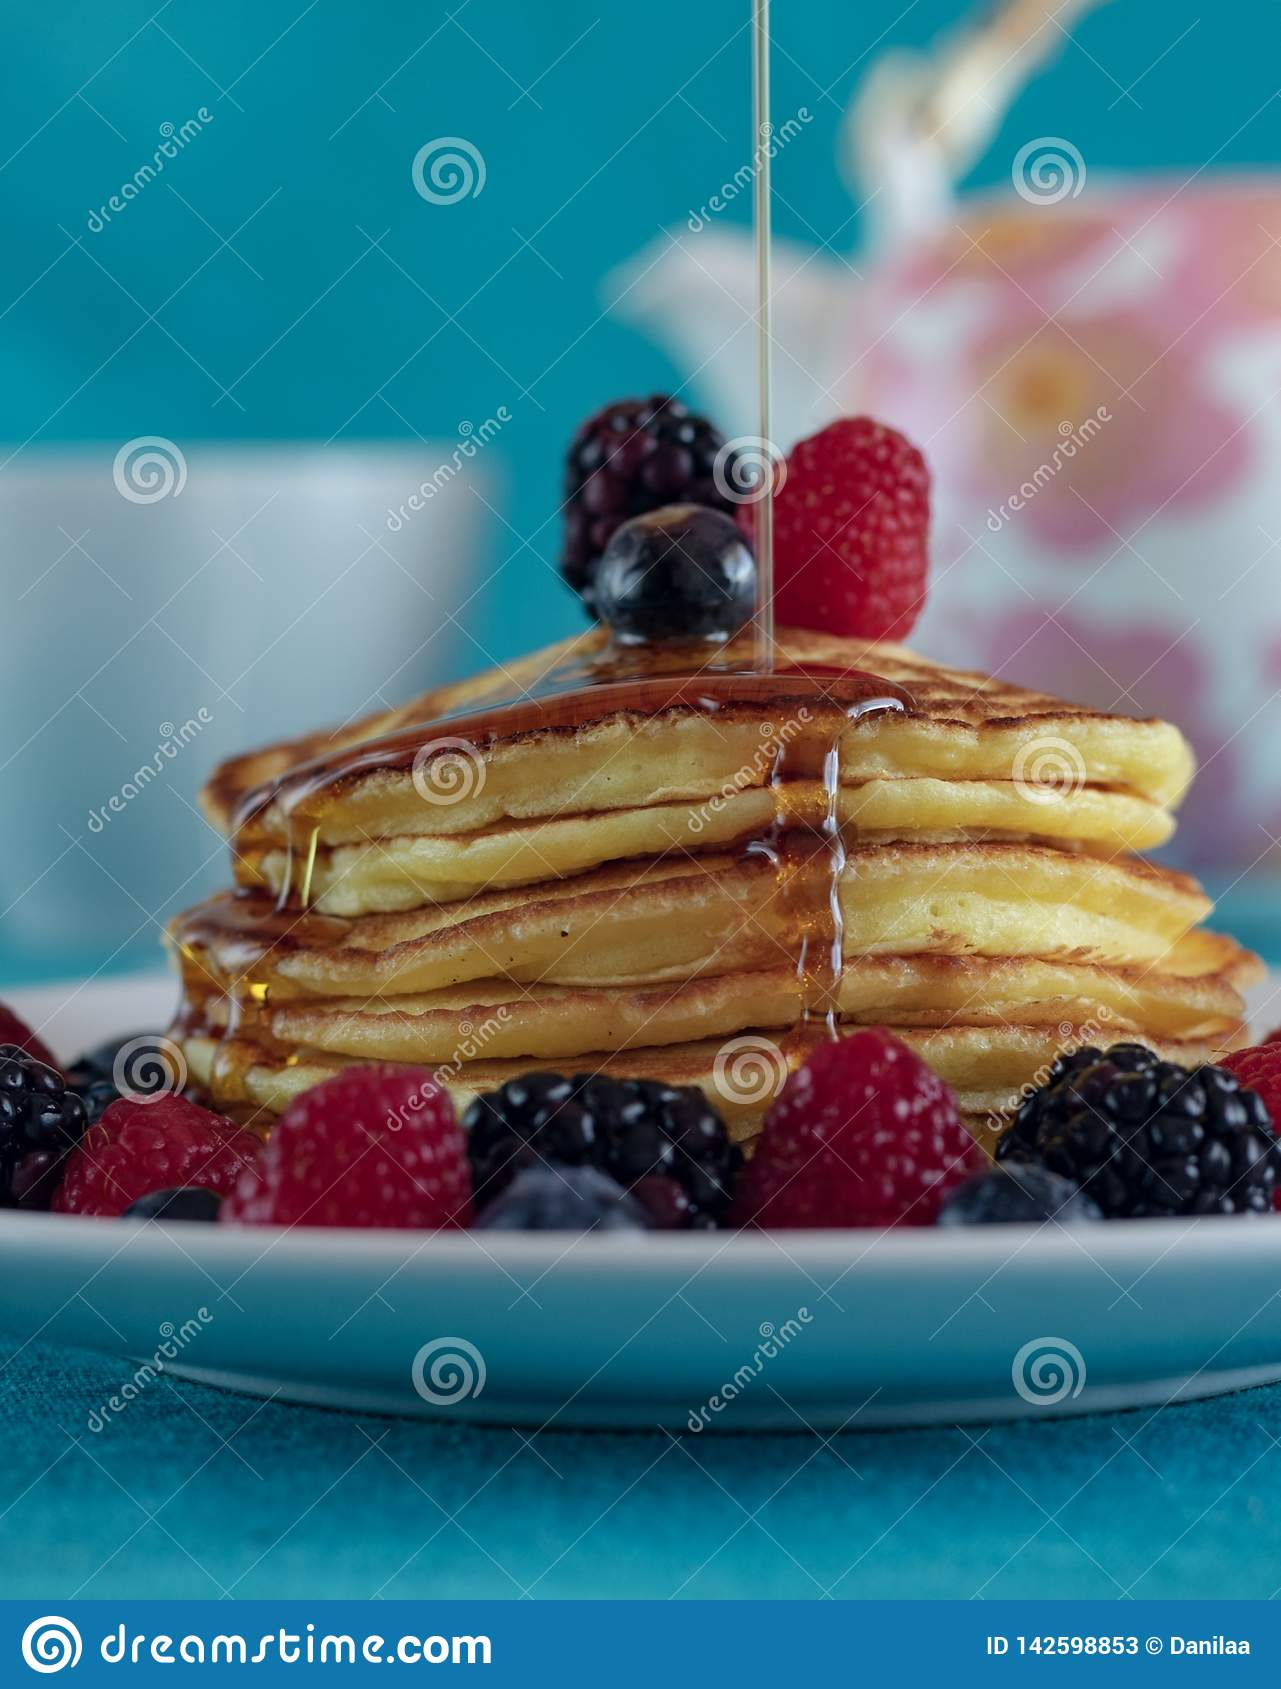 Pancake tower with a maple syrup waterfall.